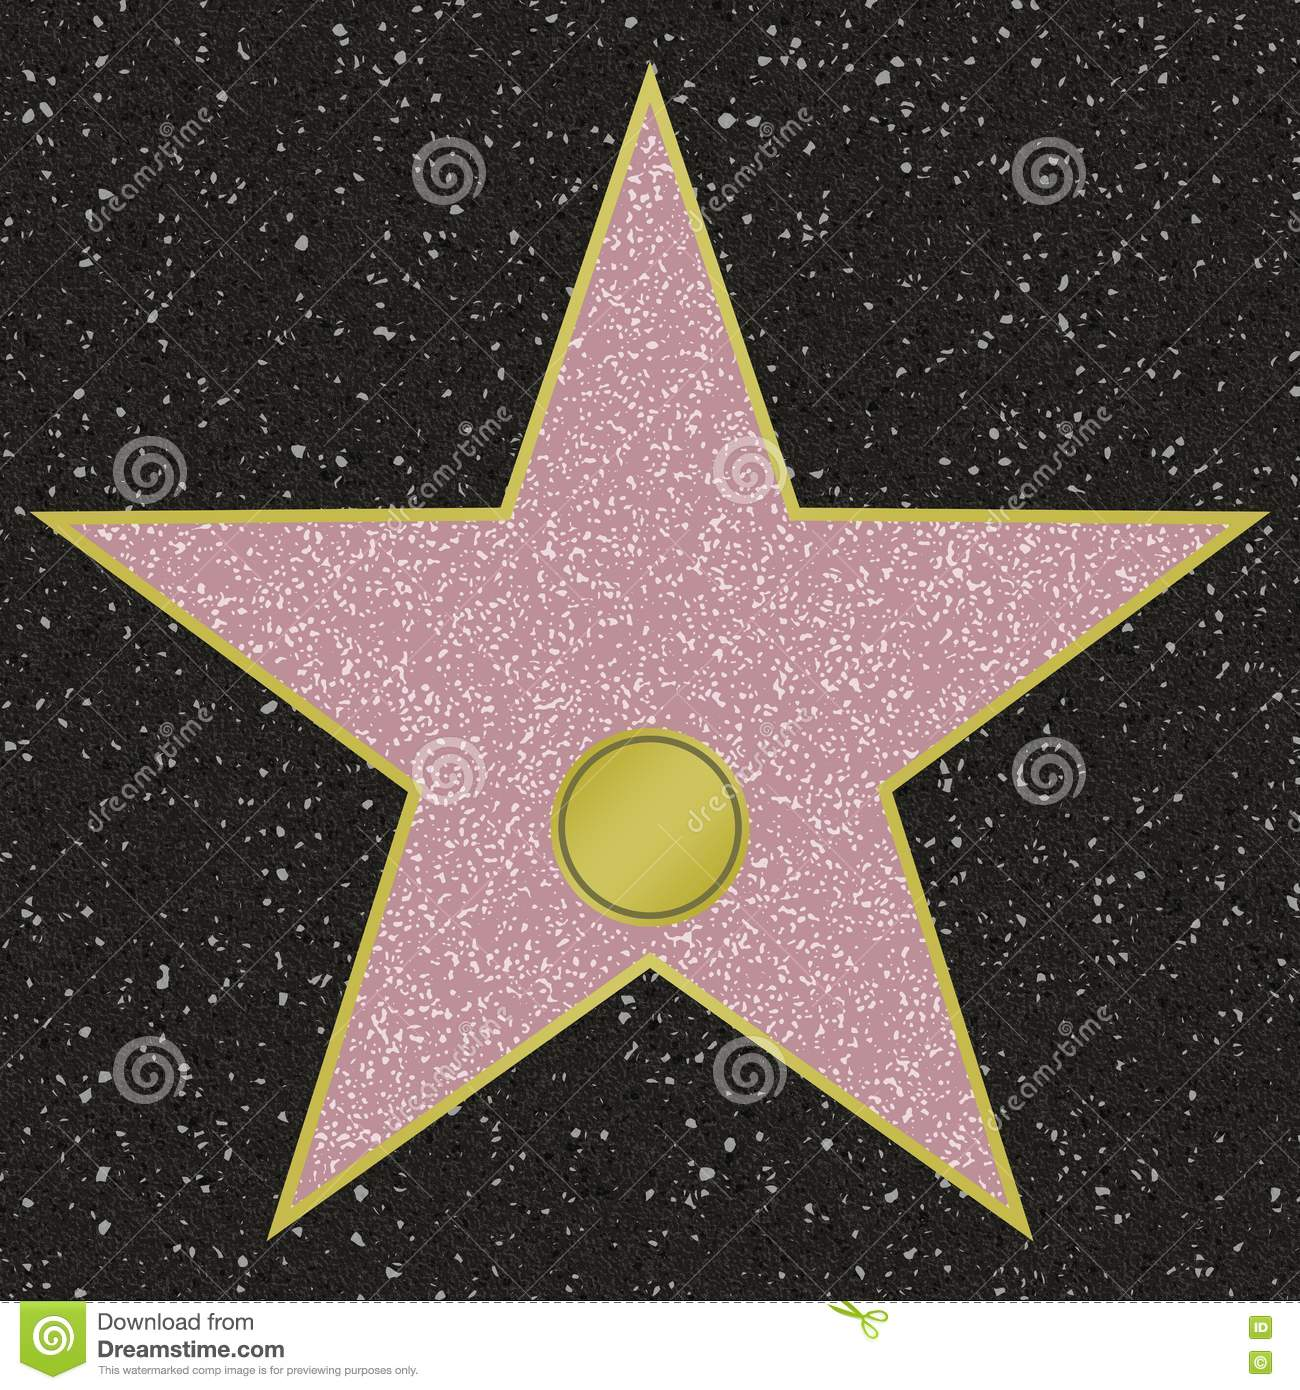 It is an image of Insane Hollywood Star Template Printable